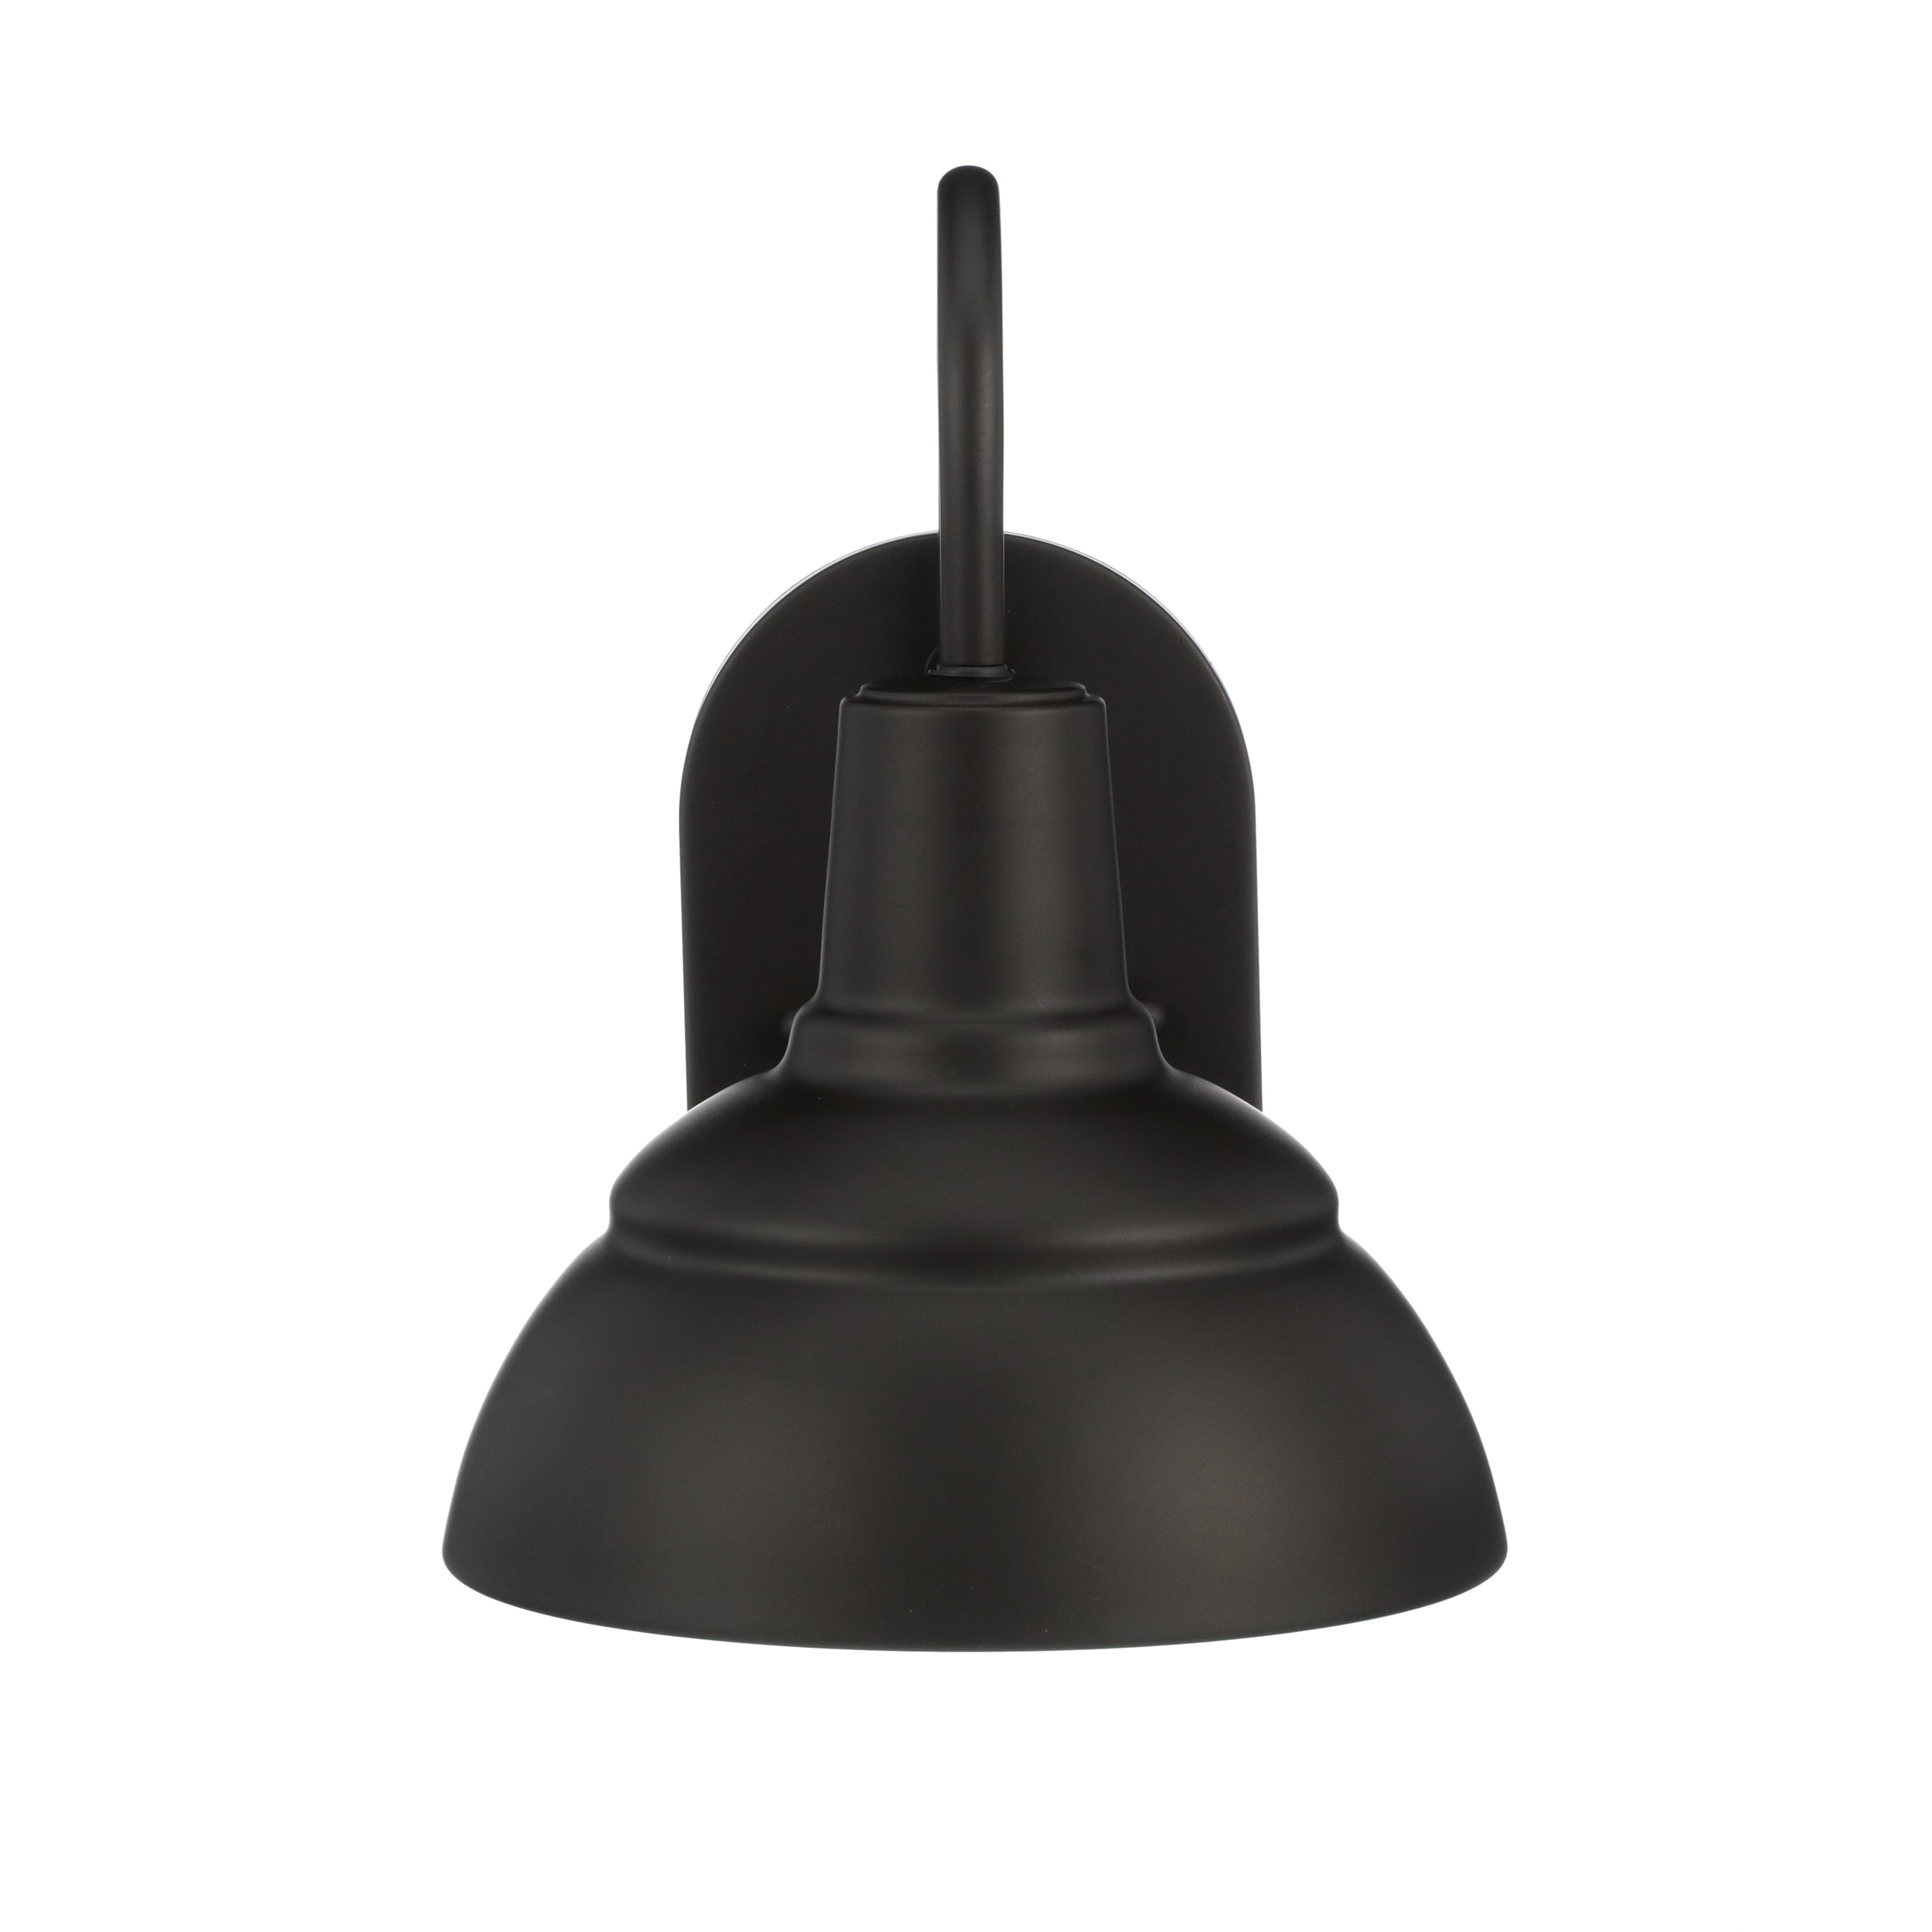 Oil Rubbed Bronze Wall Sconce Option Style Chapter LED Decorative Single Light Sconce, Oil-Rubbed bronze - Walmart.com